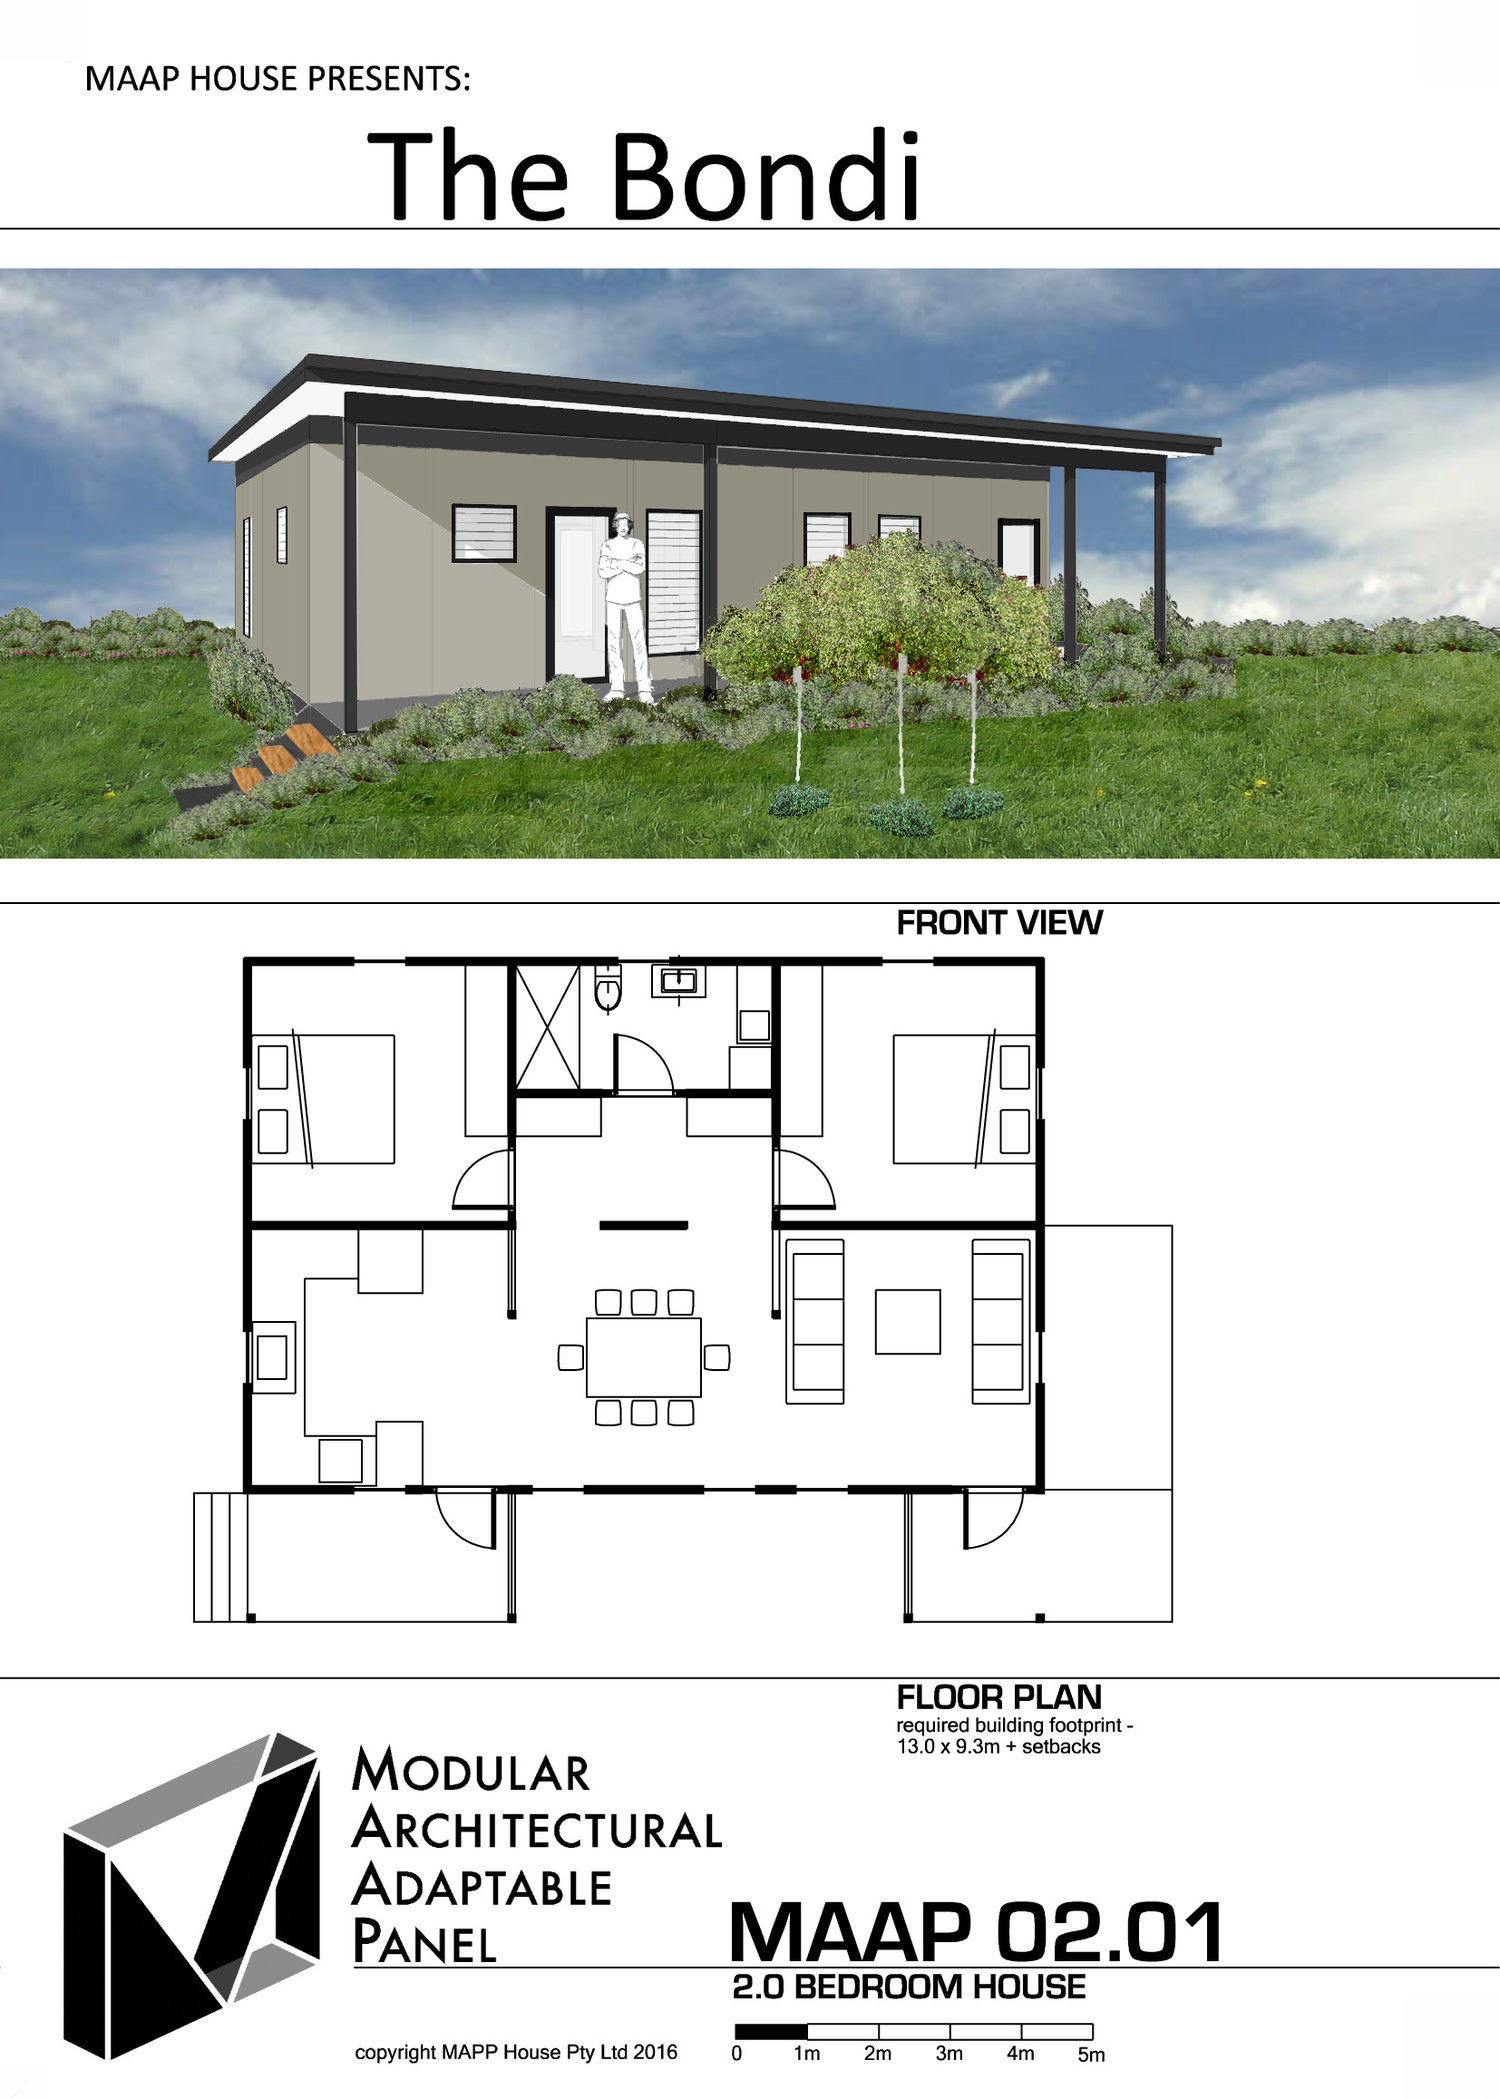 Flat Roof House Plans Design Best Of Modular House Designs Plans and Prices — Maap House